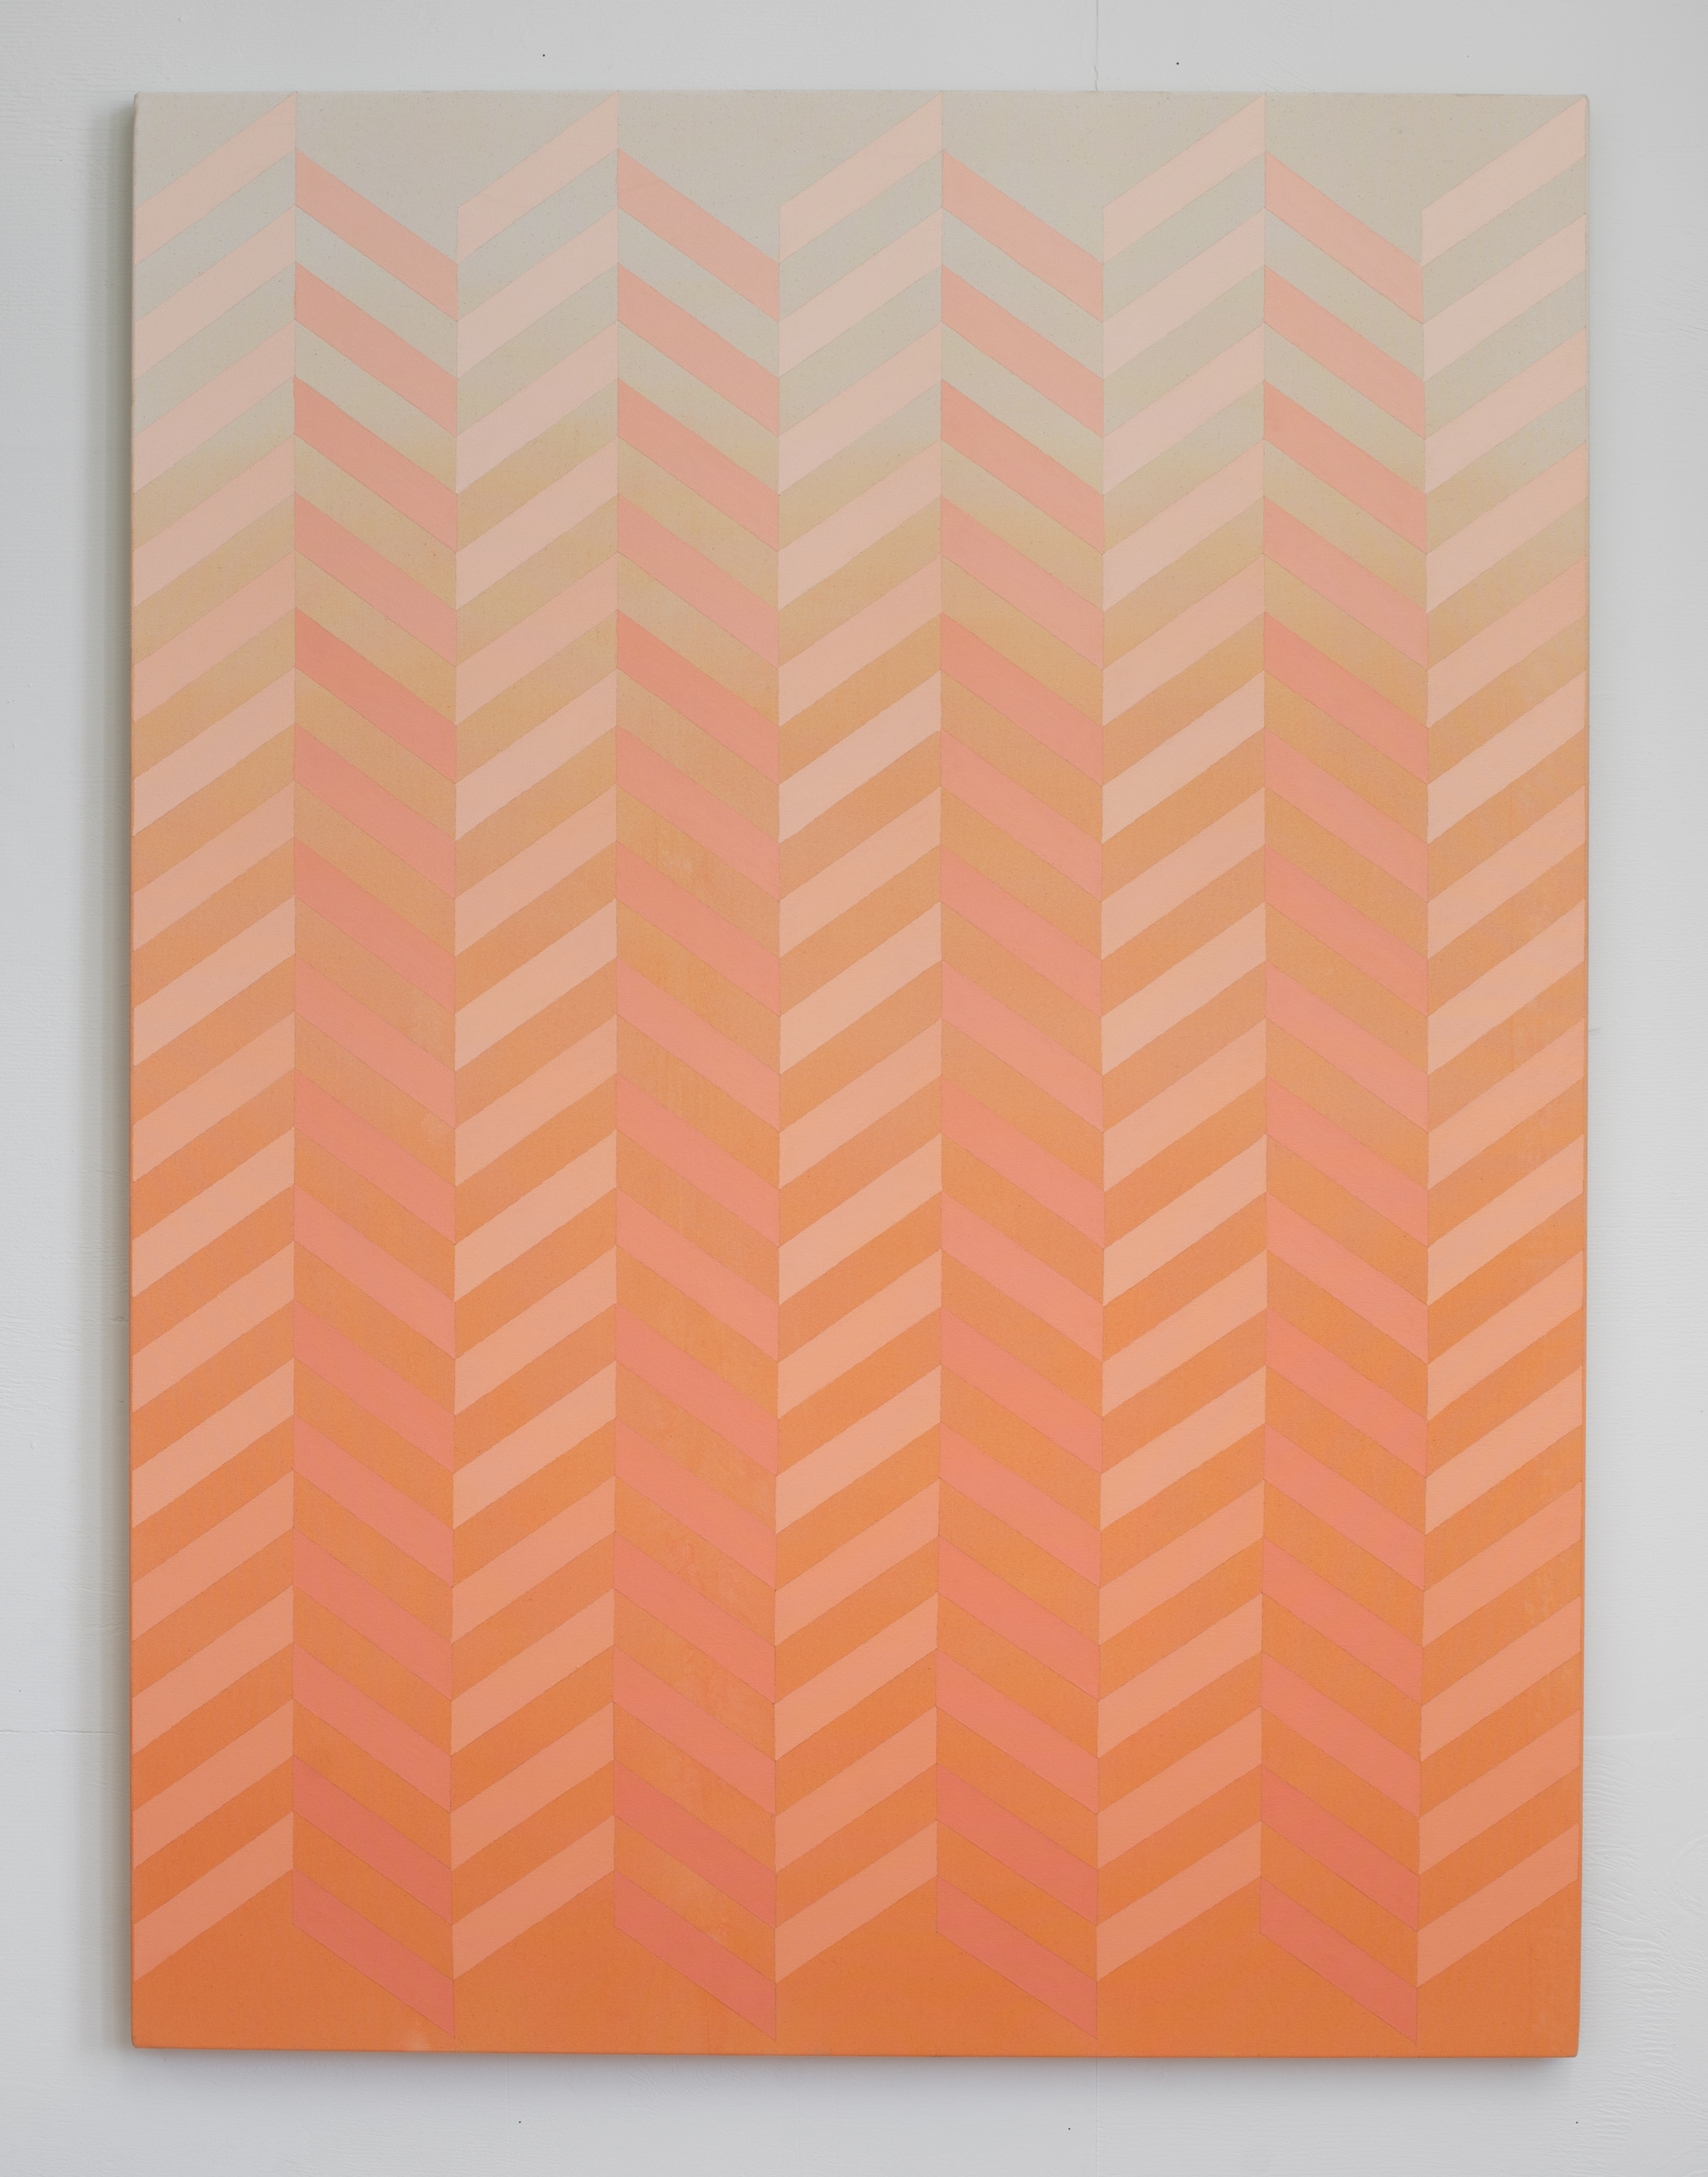 Pacific (Shimmer)  2015  Acrylic on canvas  137x 101.5cm